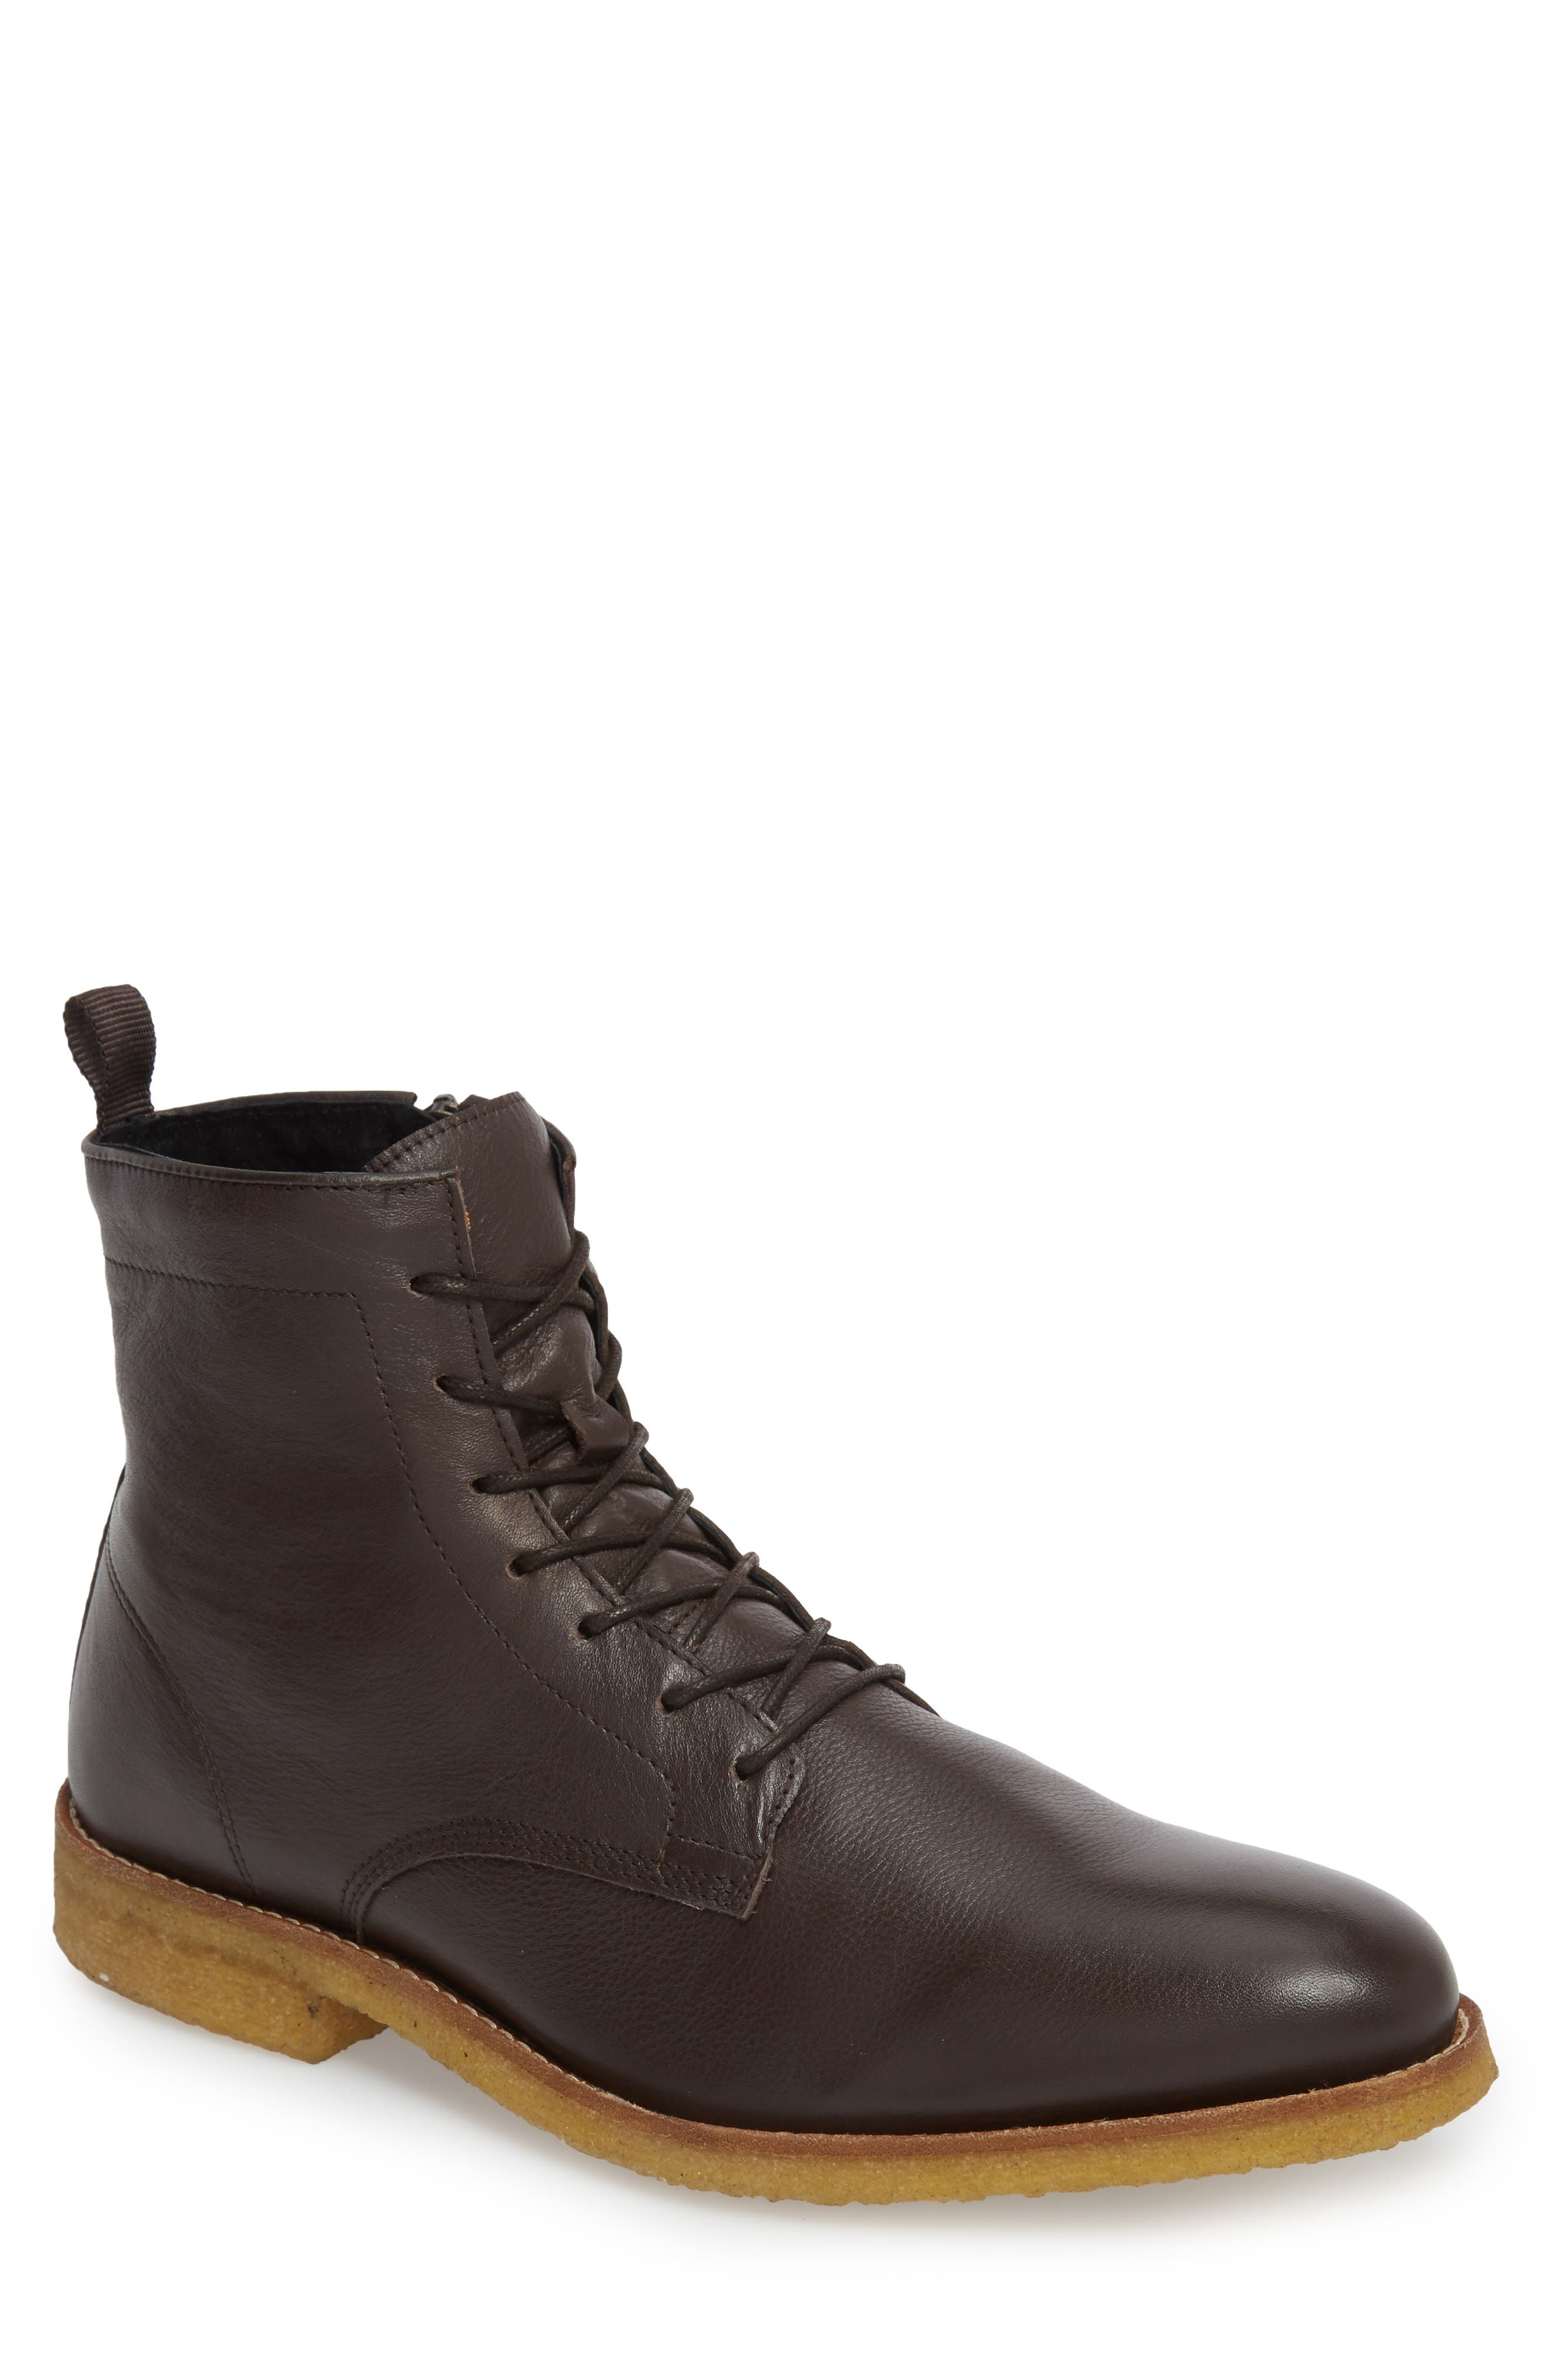 Jonah Plain Toe Boot,                         Main,                         color, Brown Leather